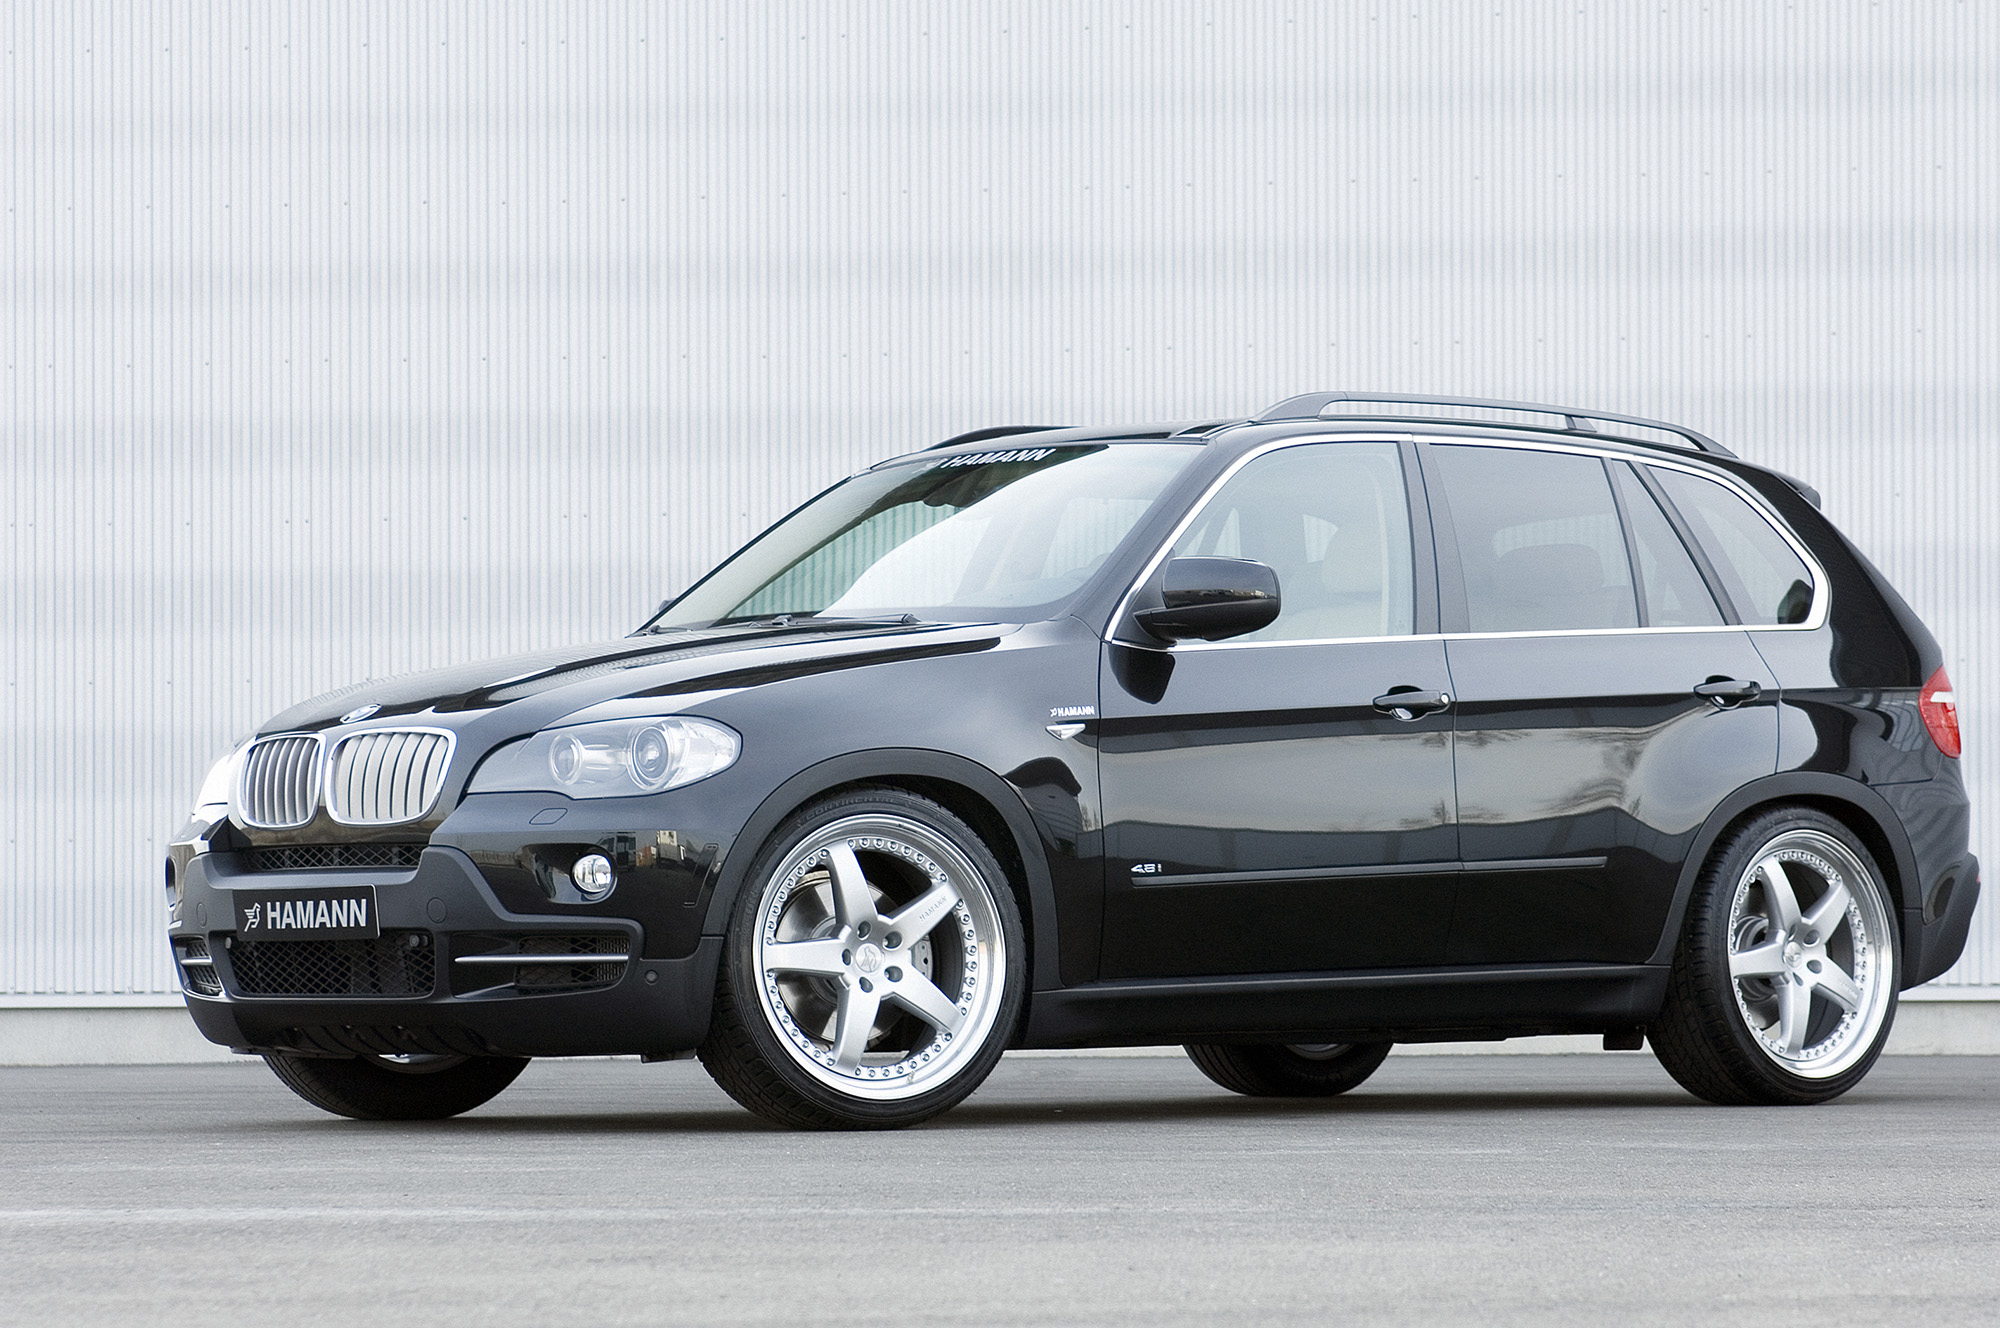 hamann bmw x5 e70 picture 41875 hamann photo gallery. Black Bedroom Furniture Sets. Home Design Ideas